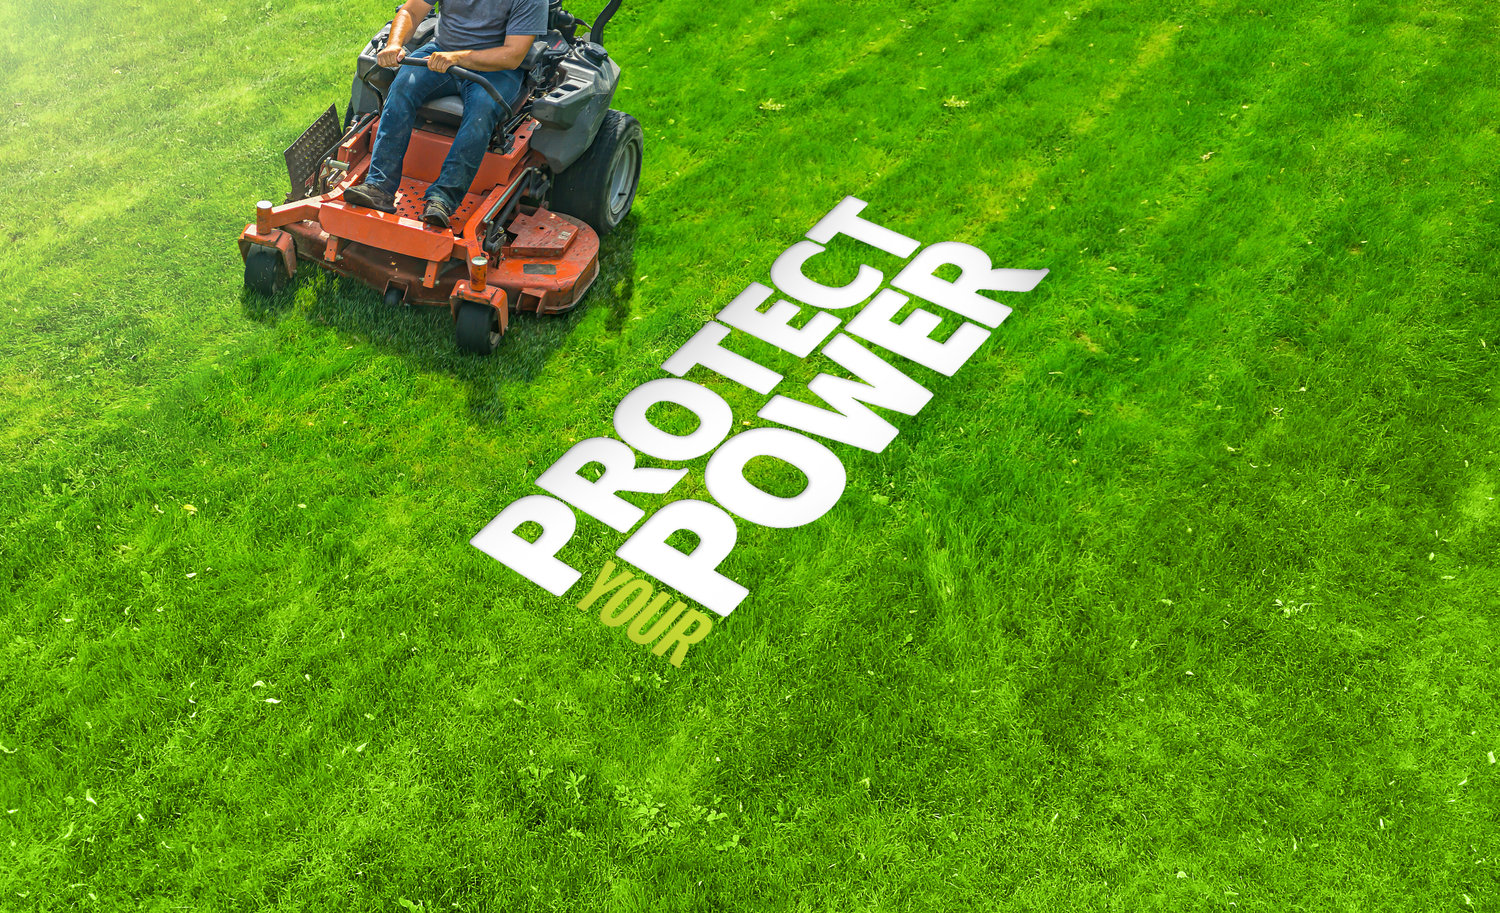 The grass can be greener on your side of the fence if you take proper care of your power equipment.